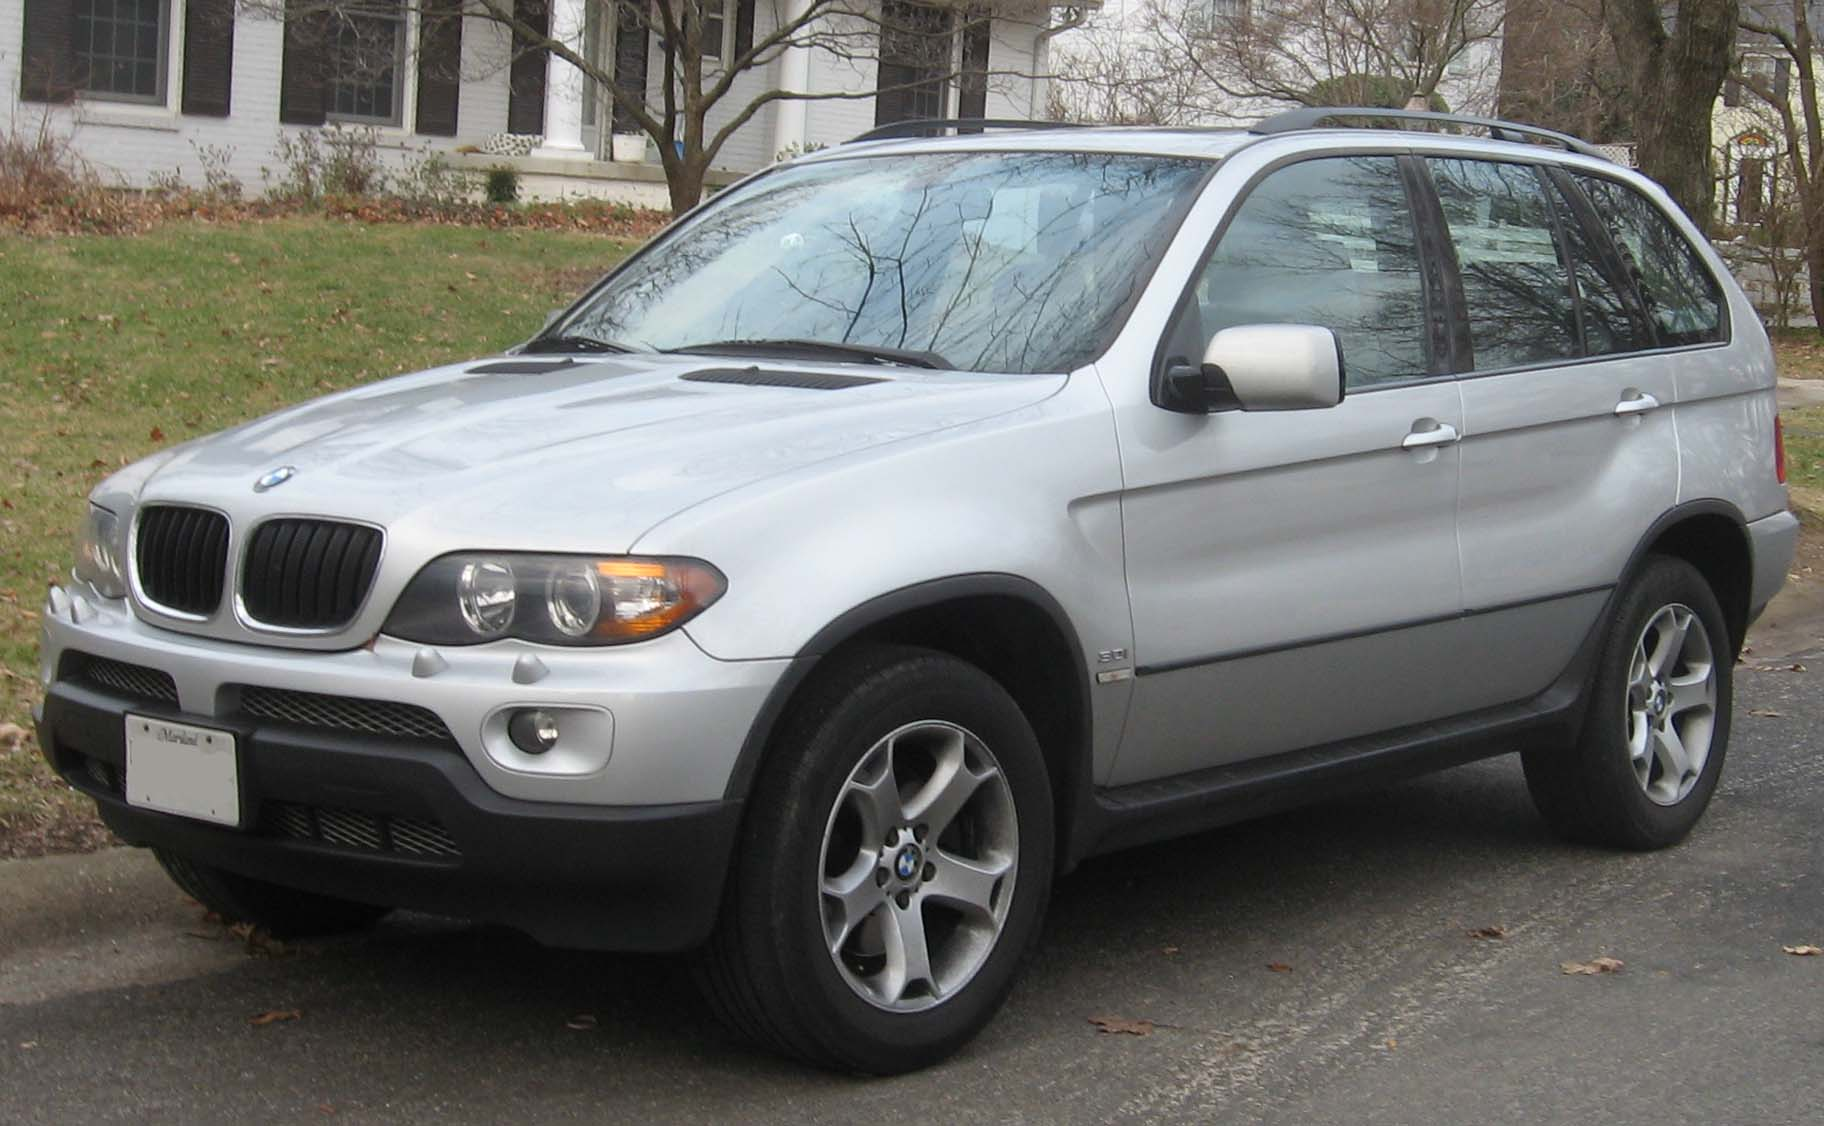 BMW X5 front view in silver